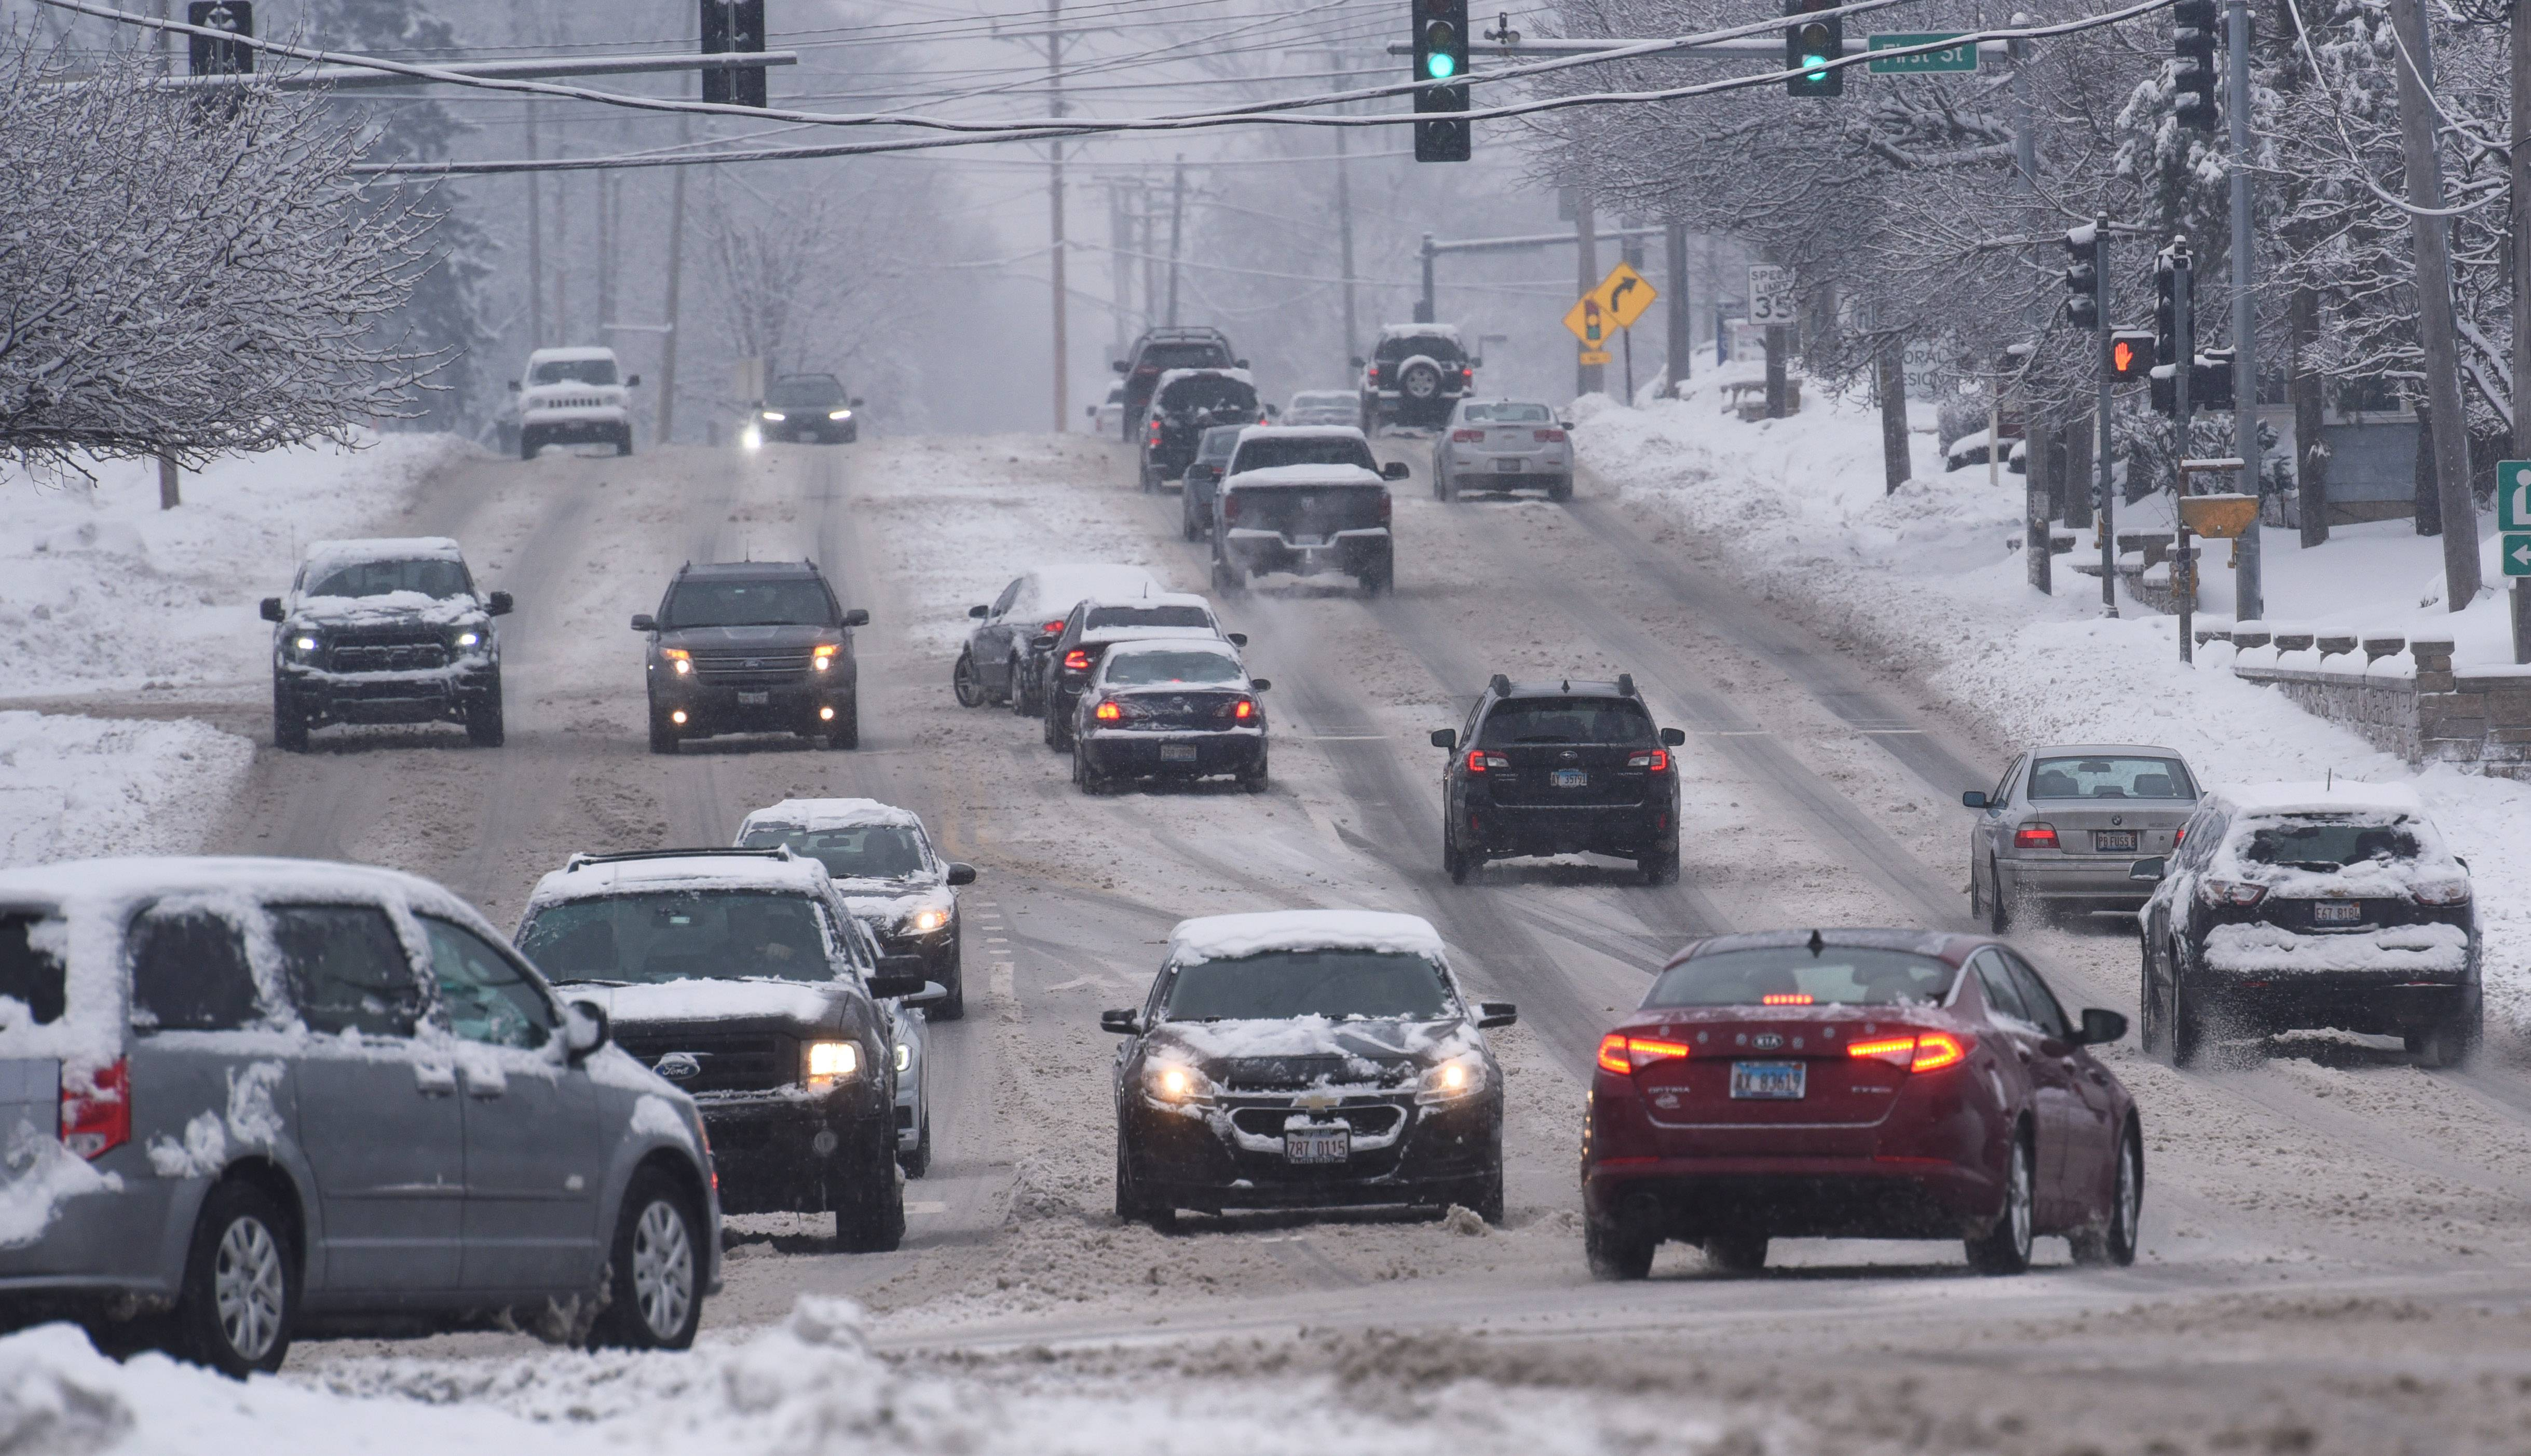 Do you really know how to drive in winter weather? Check out these tips